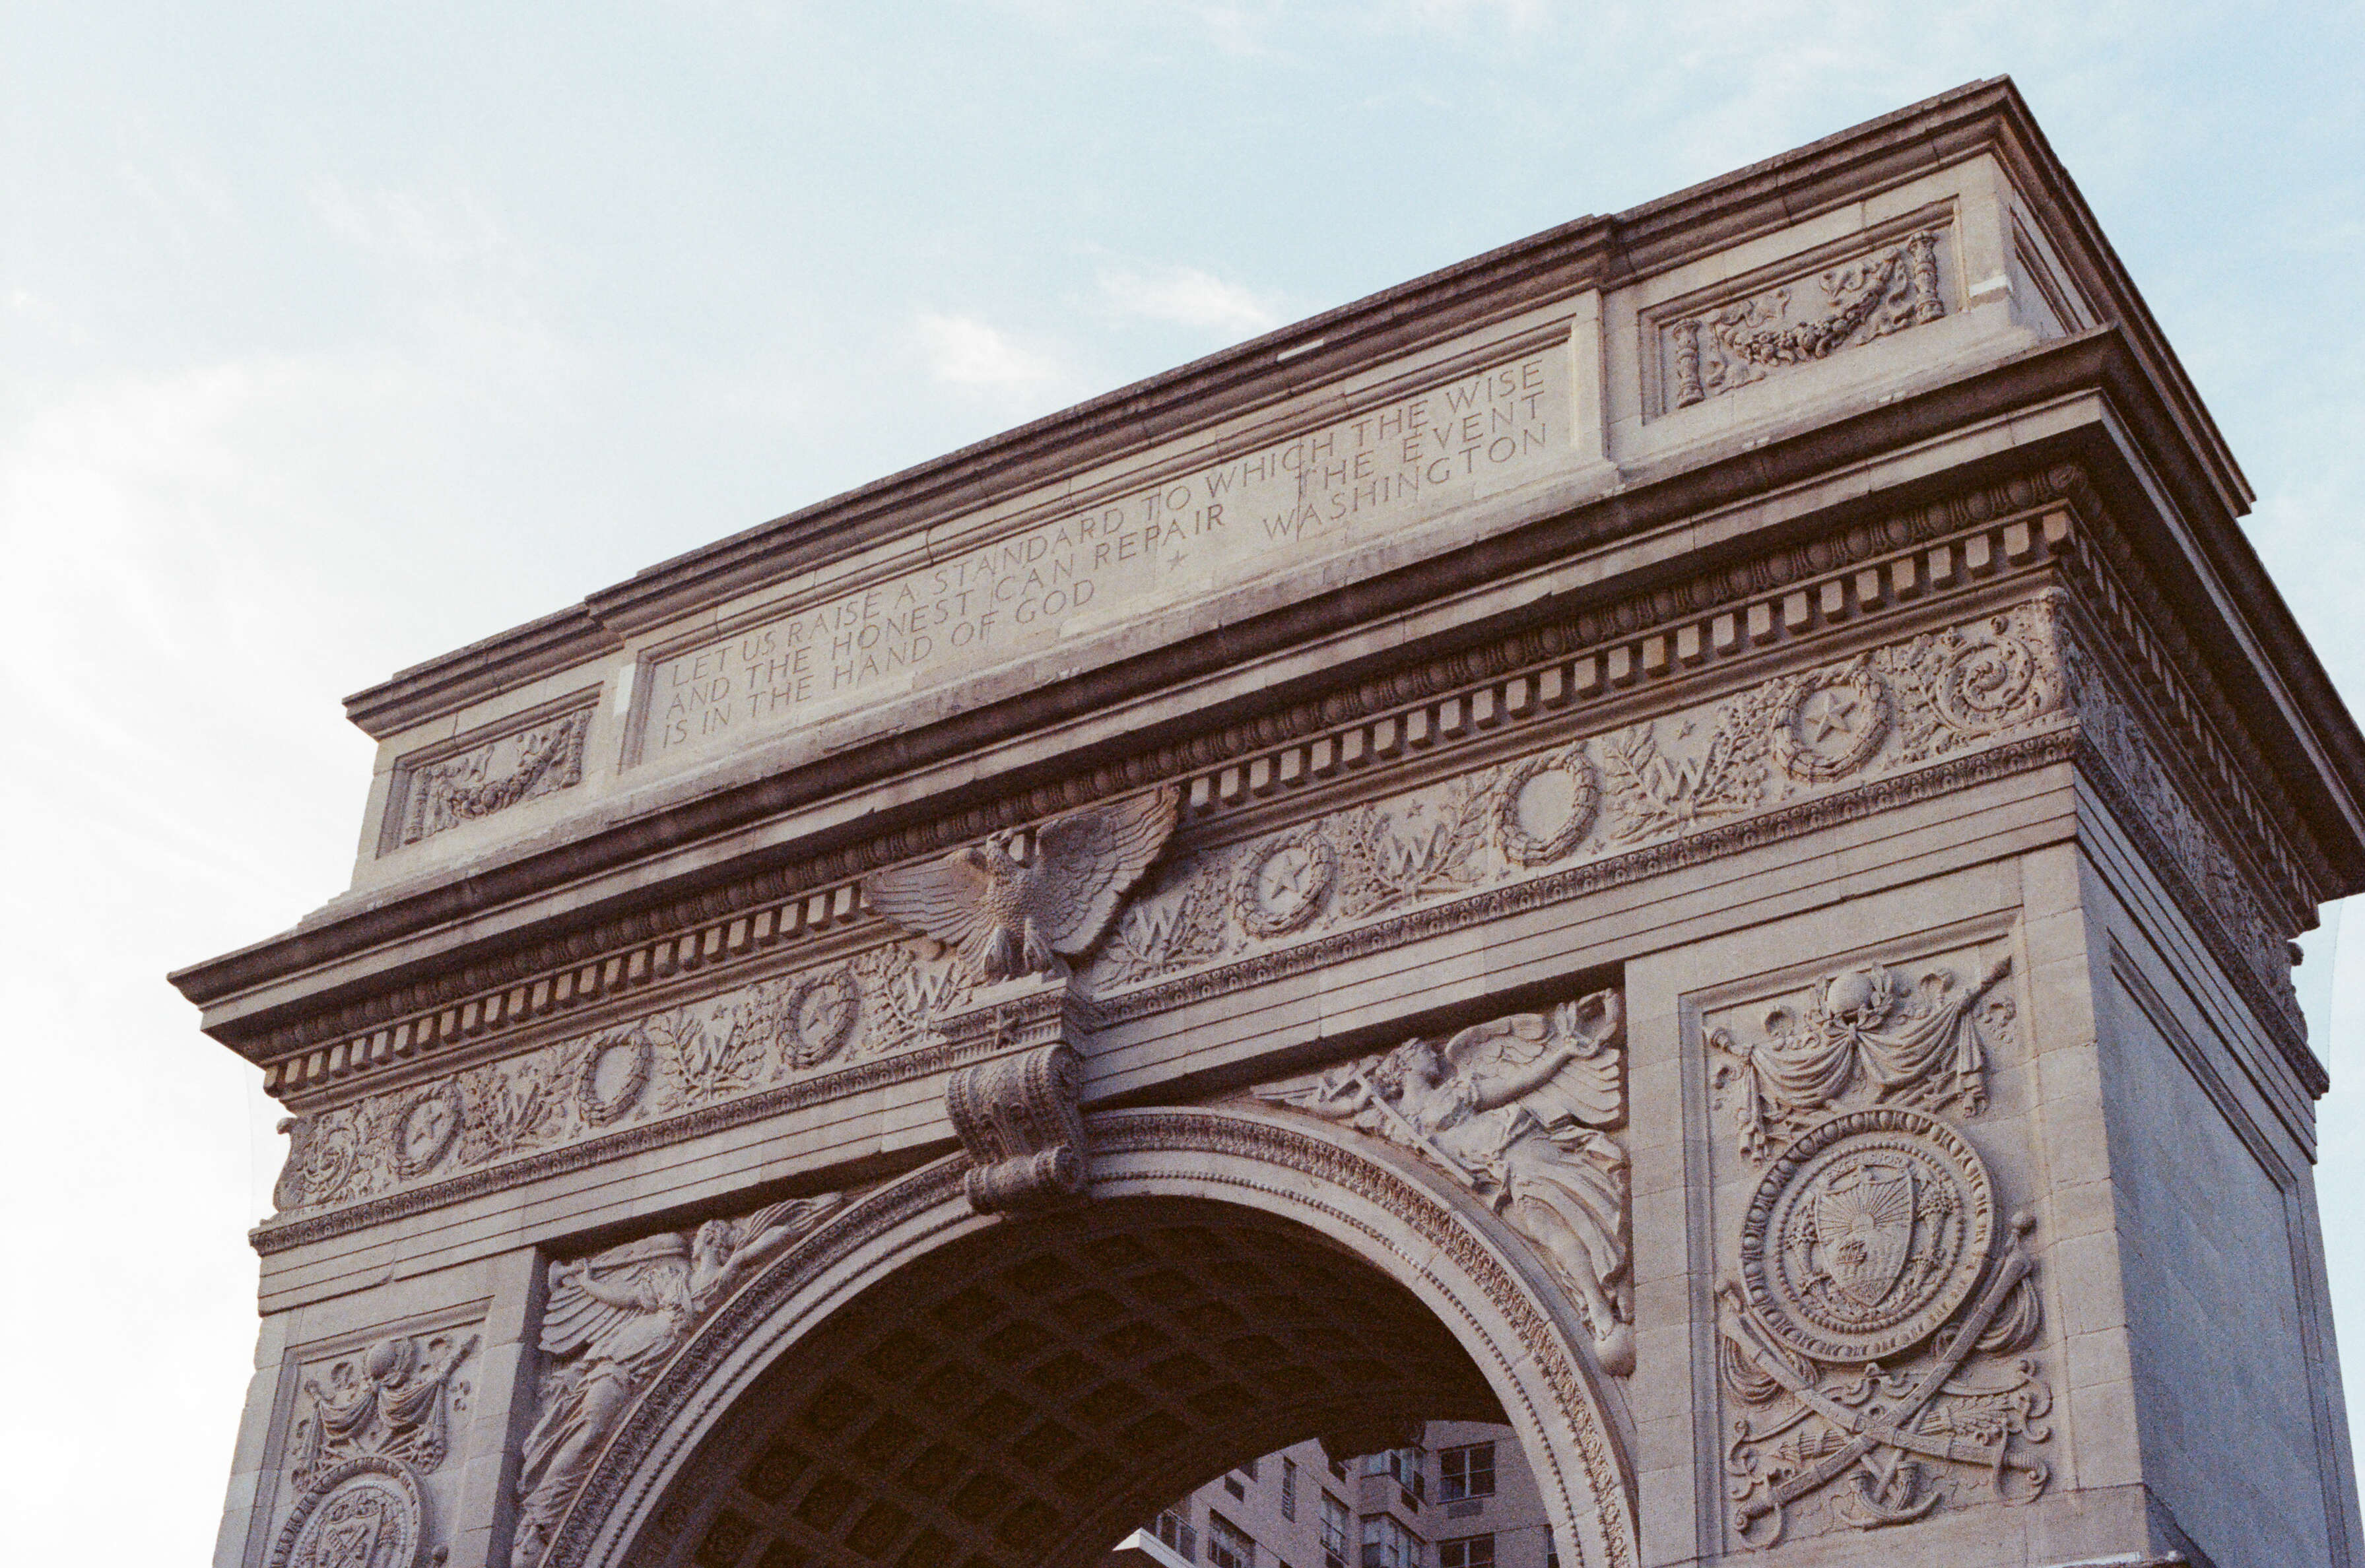 The Arch.  - Washington Square Park, NYC